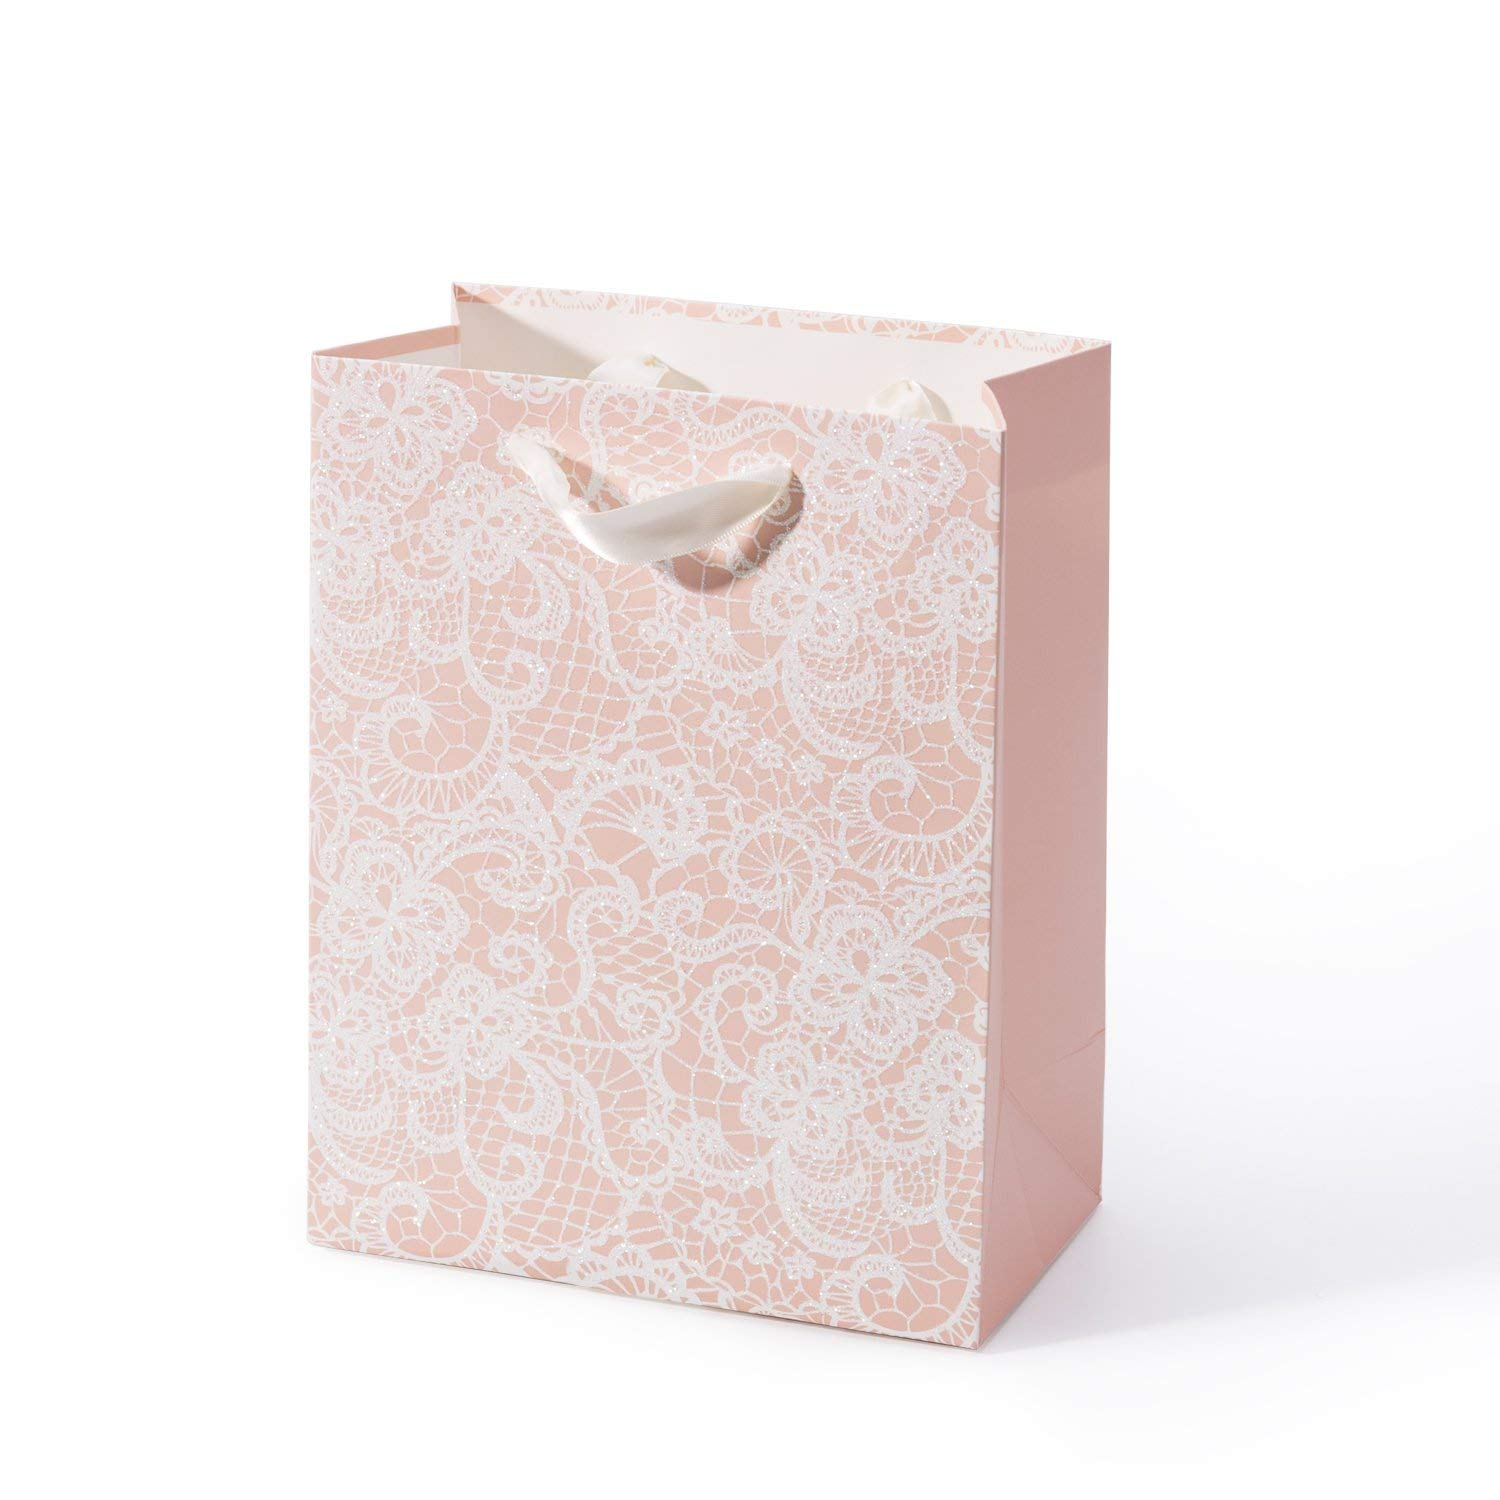 """WRAPAHOLIC Medium Size Gift Bags - Floral Lace Print with Glitter - Pink Shopping Bag for Wedding, Bridal, Baby Shower,Party Favors - 7"""" x 4"""" x 9"""" - 12 Pack"""